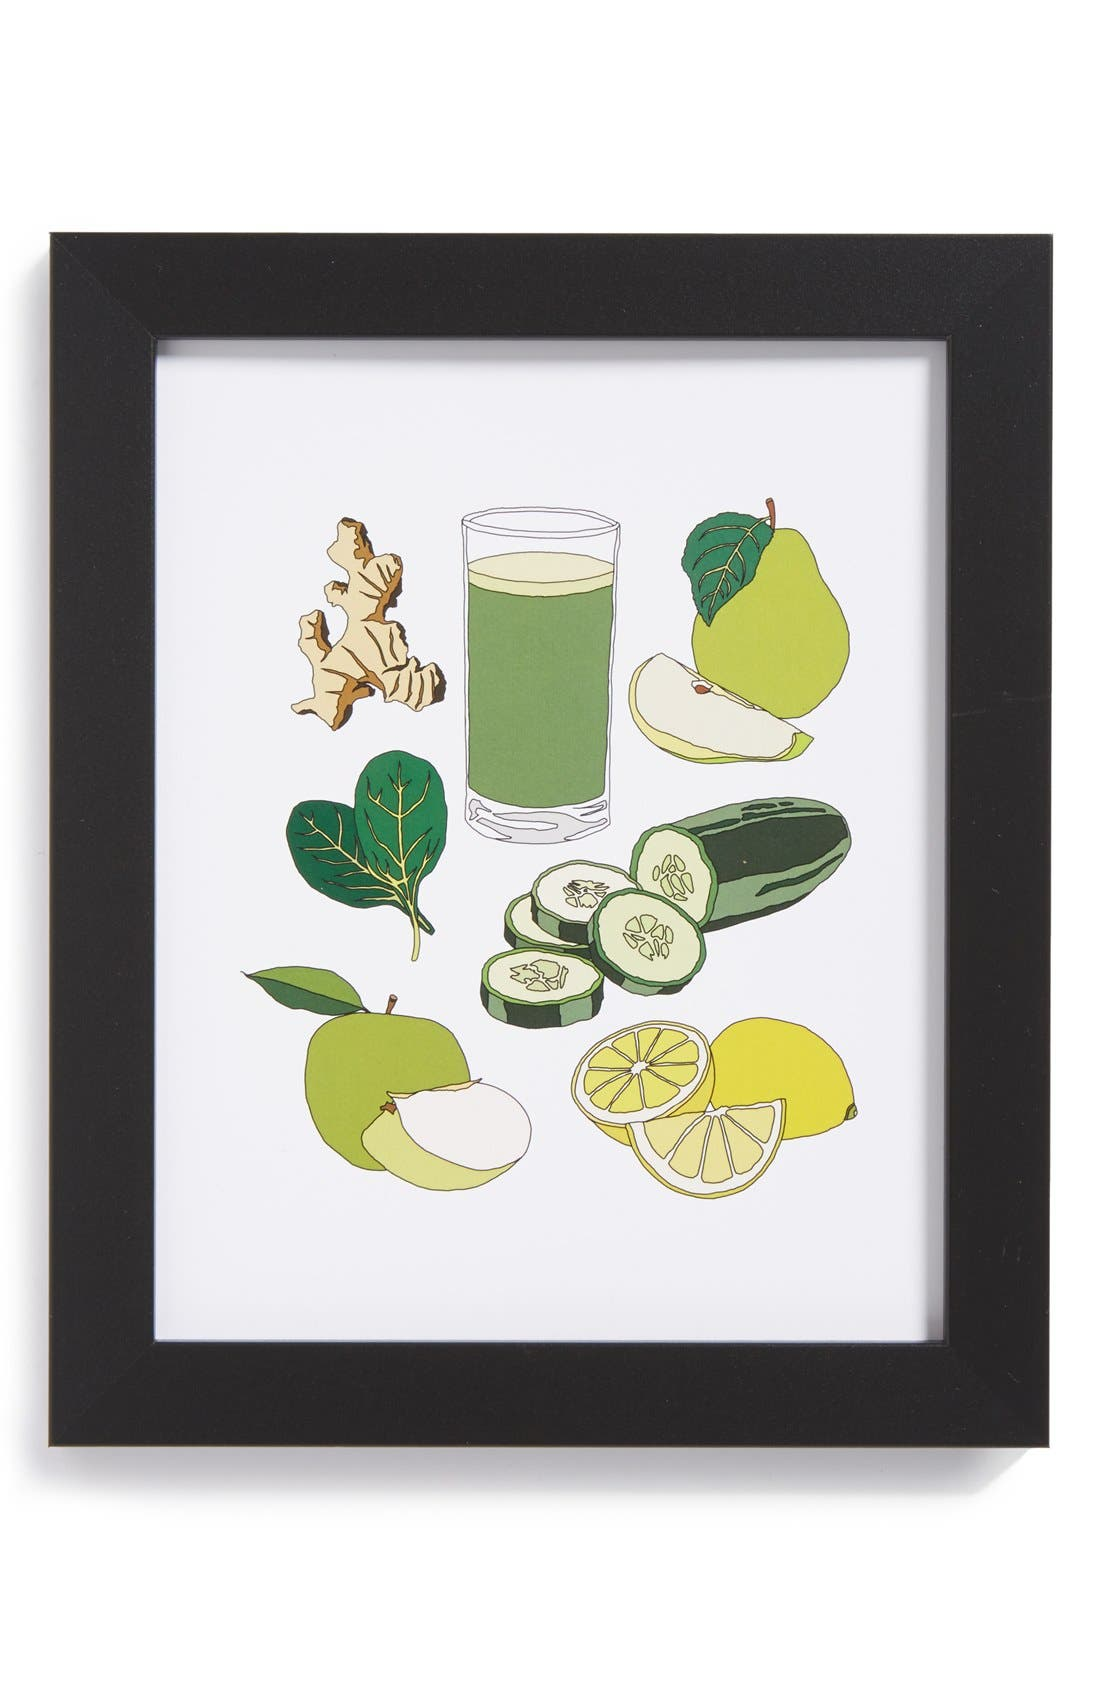 Alternate Image 1 Selected - The Oyster's Pearl 'Green Juice' Framed Print